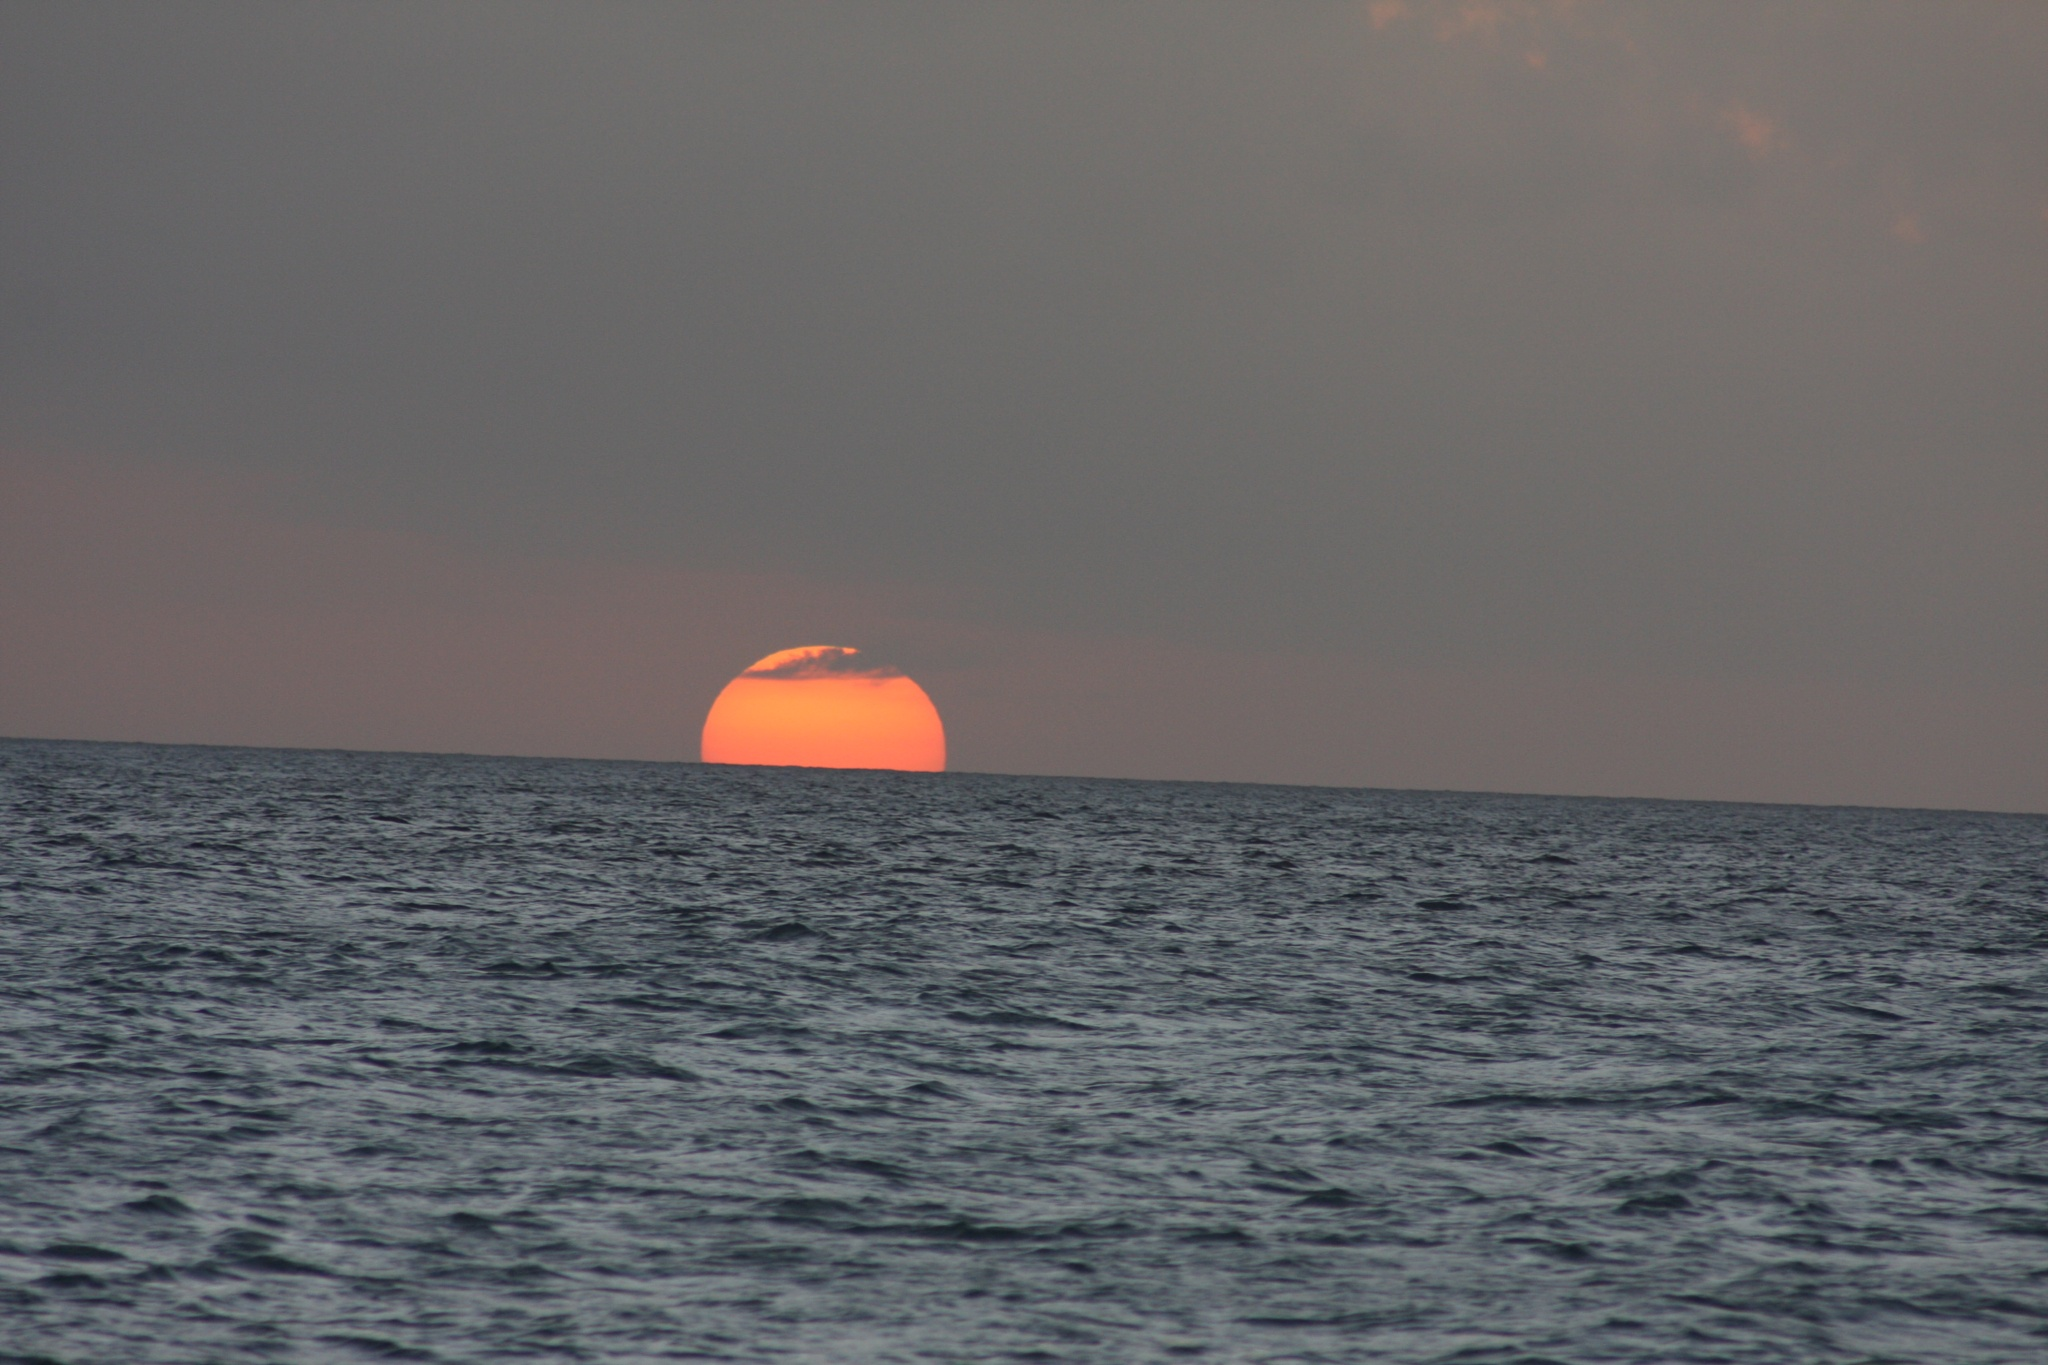 Sunset Into the ocean by Roger Sims